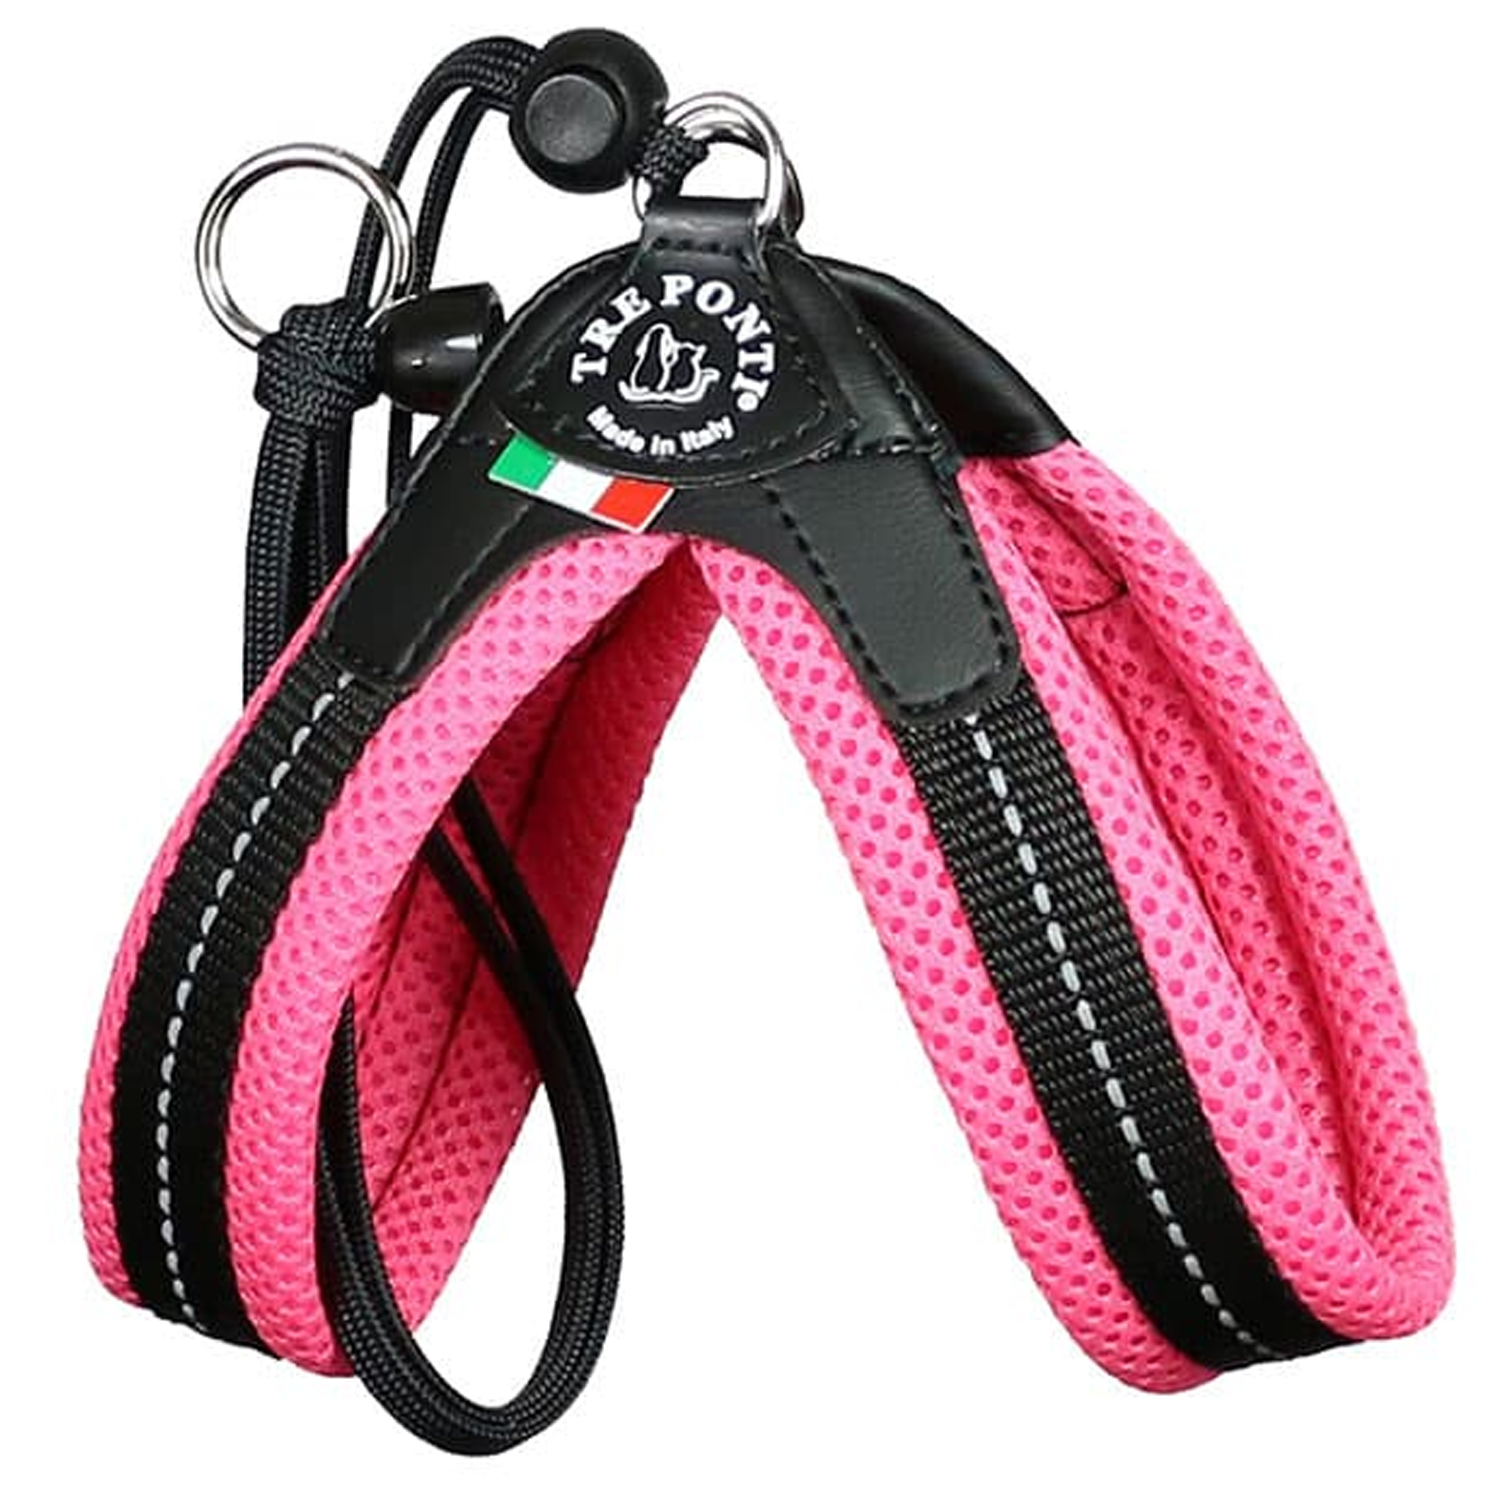 Hot Pink Mesh Strap Dog Harness